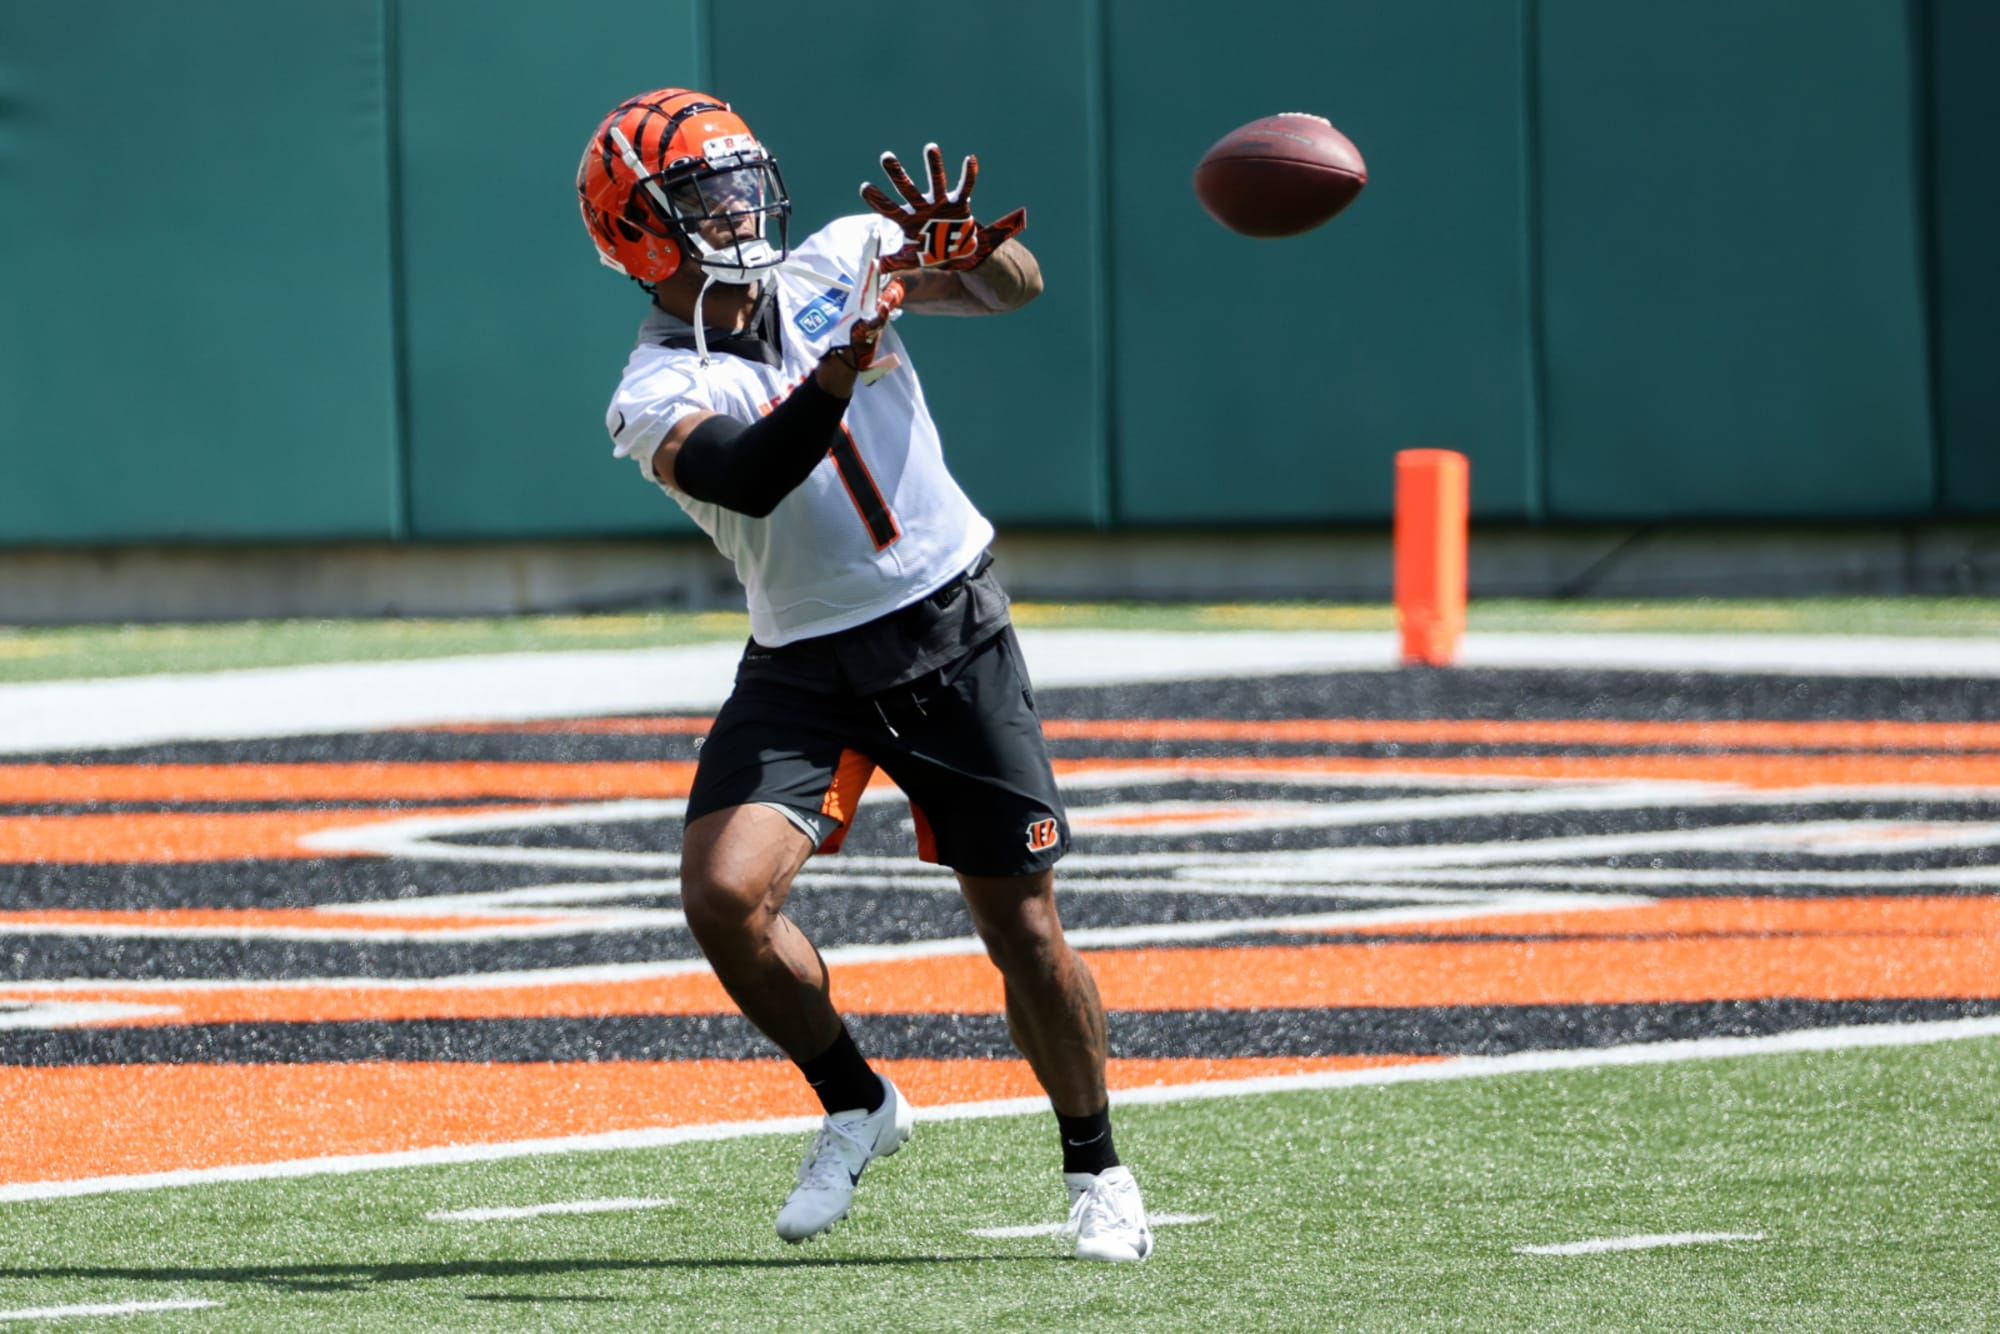 Cincinnati Bengals: Ja'Marr Chase receives high praise from Mike Green